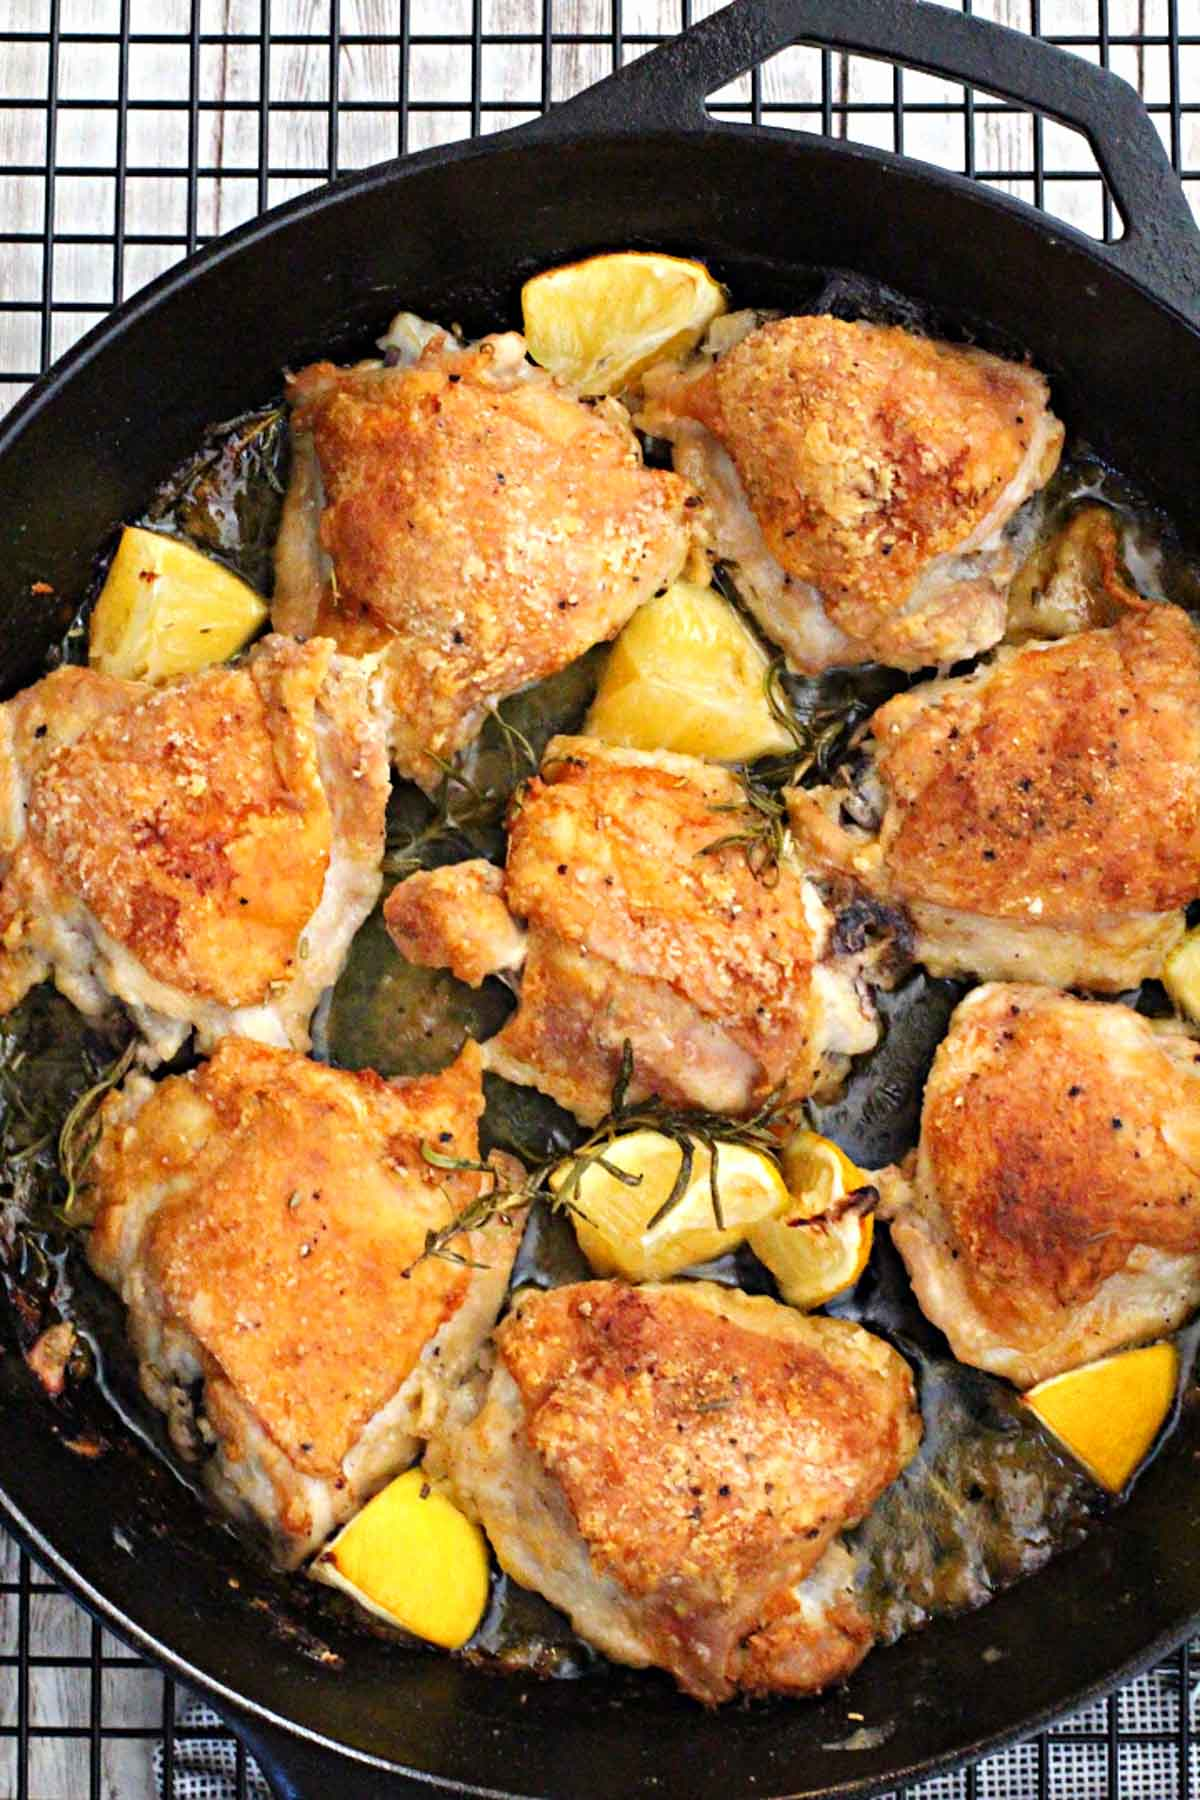 Cast Iron Skillet rosemary braised chicken thighs with lemon wedges cooking on a wire rack.